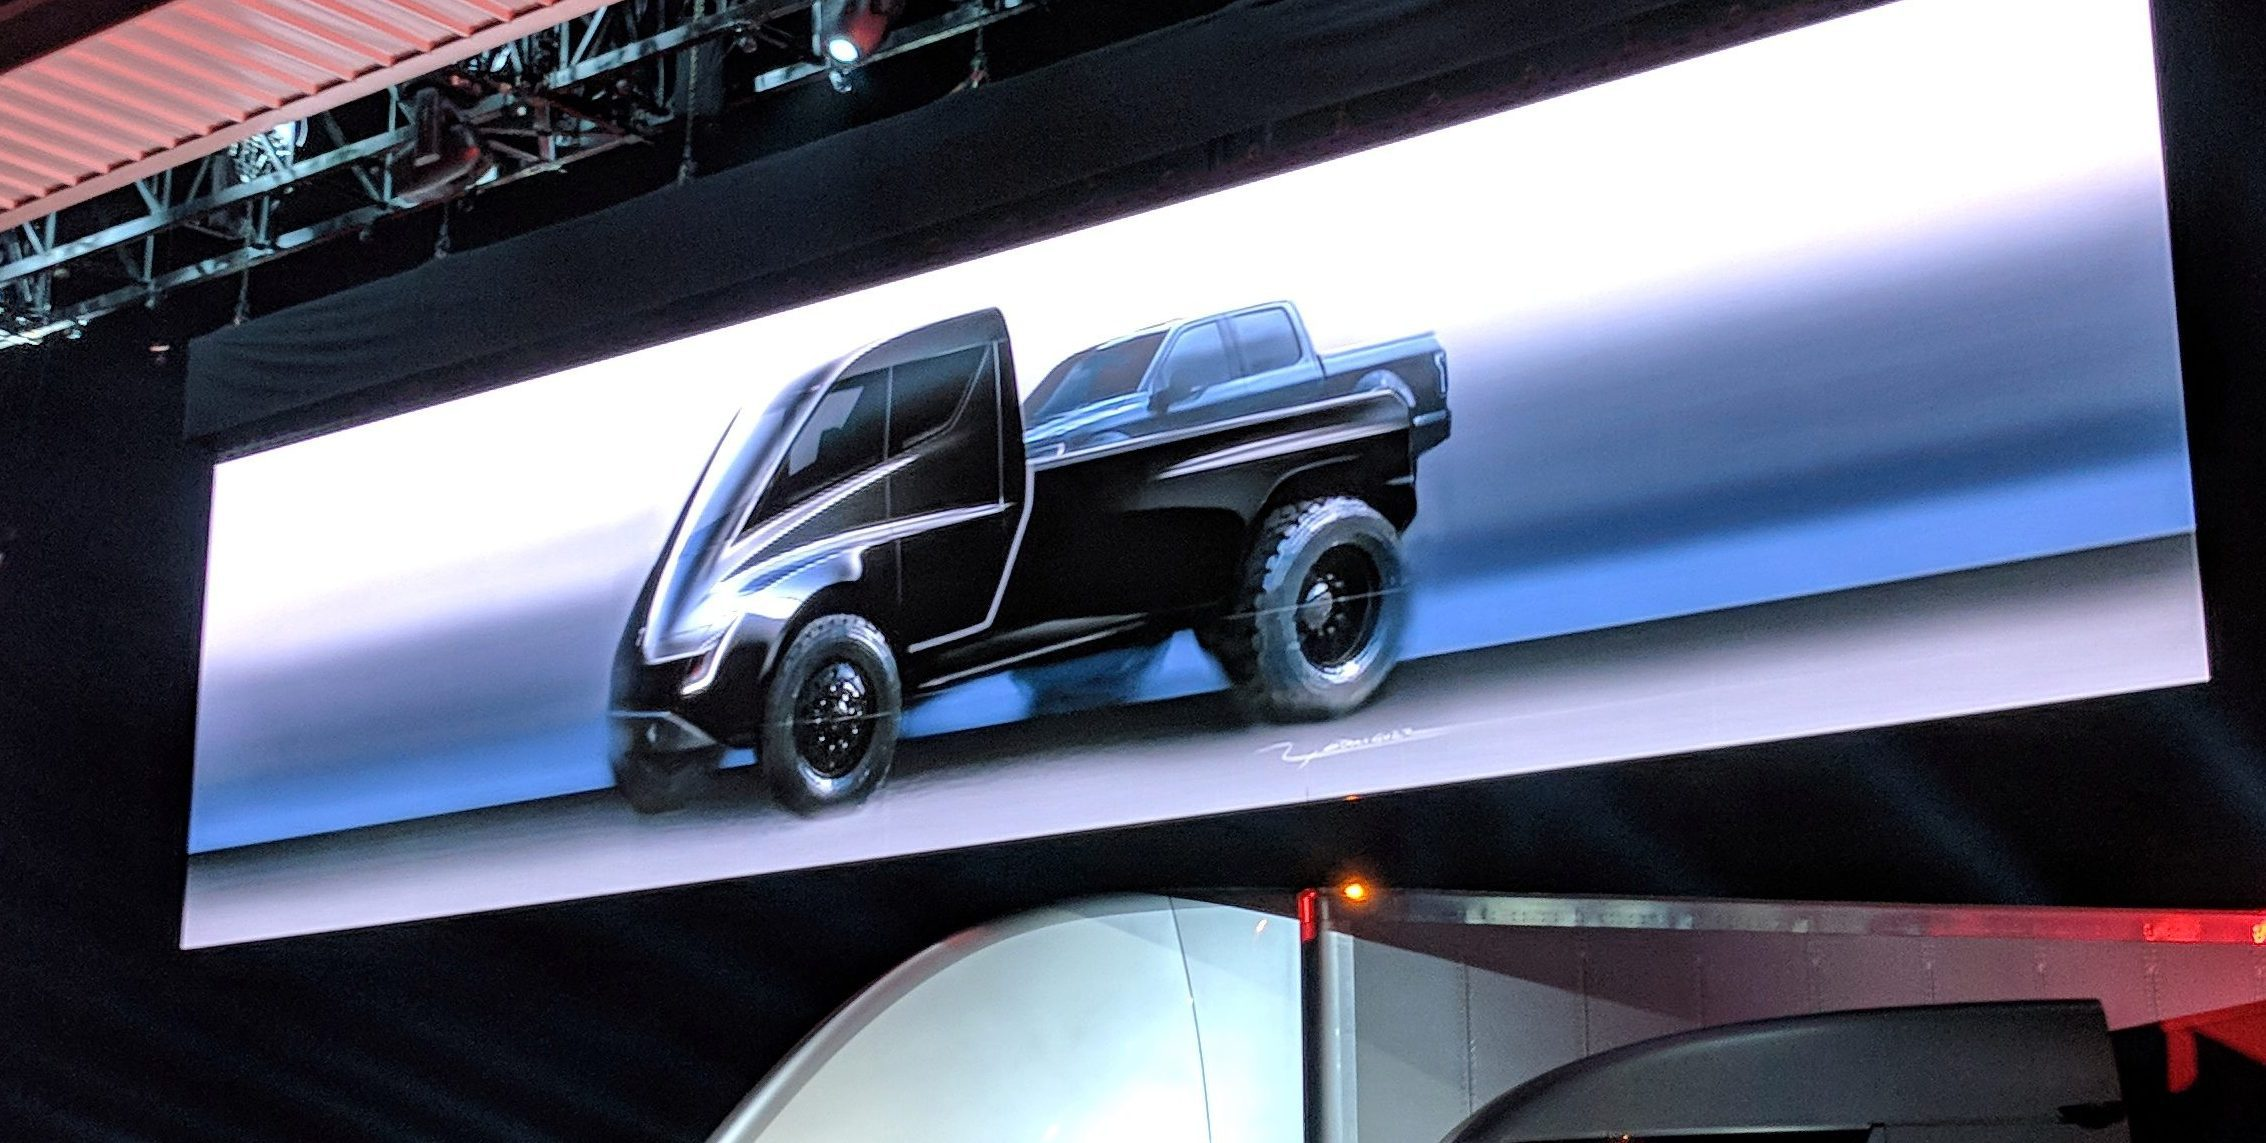 Tesla Pickup Truck is Elon Musk's 'favorite next product' and U.S. automakers should be afraid